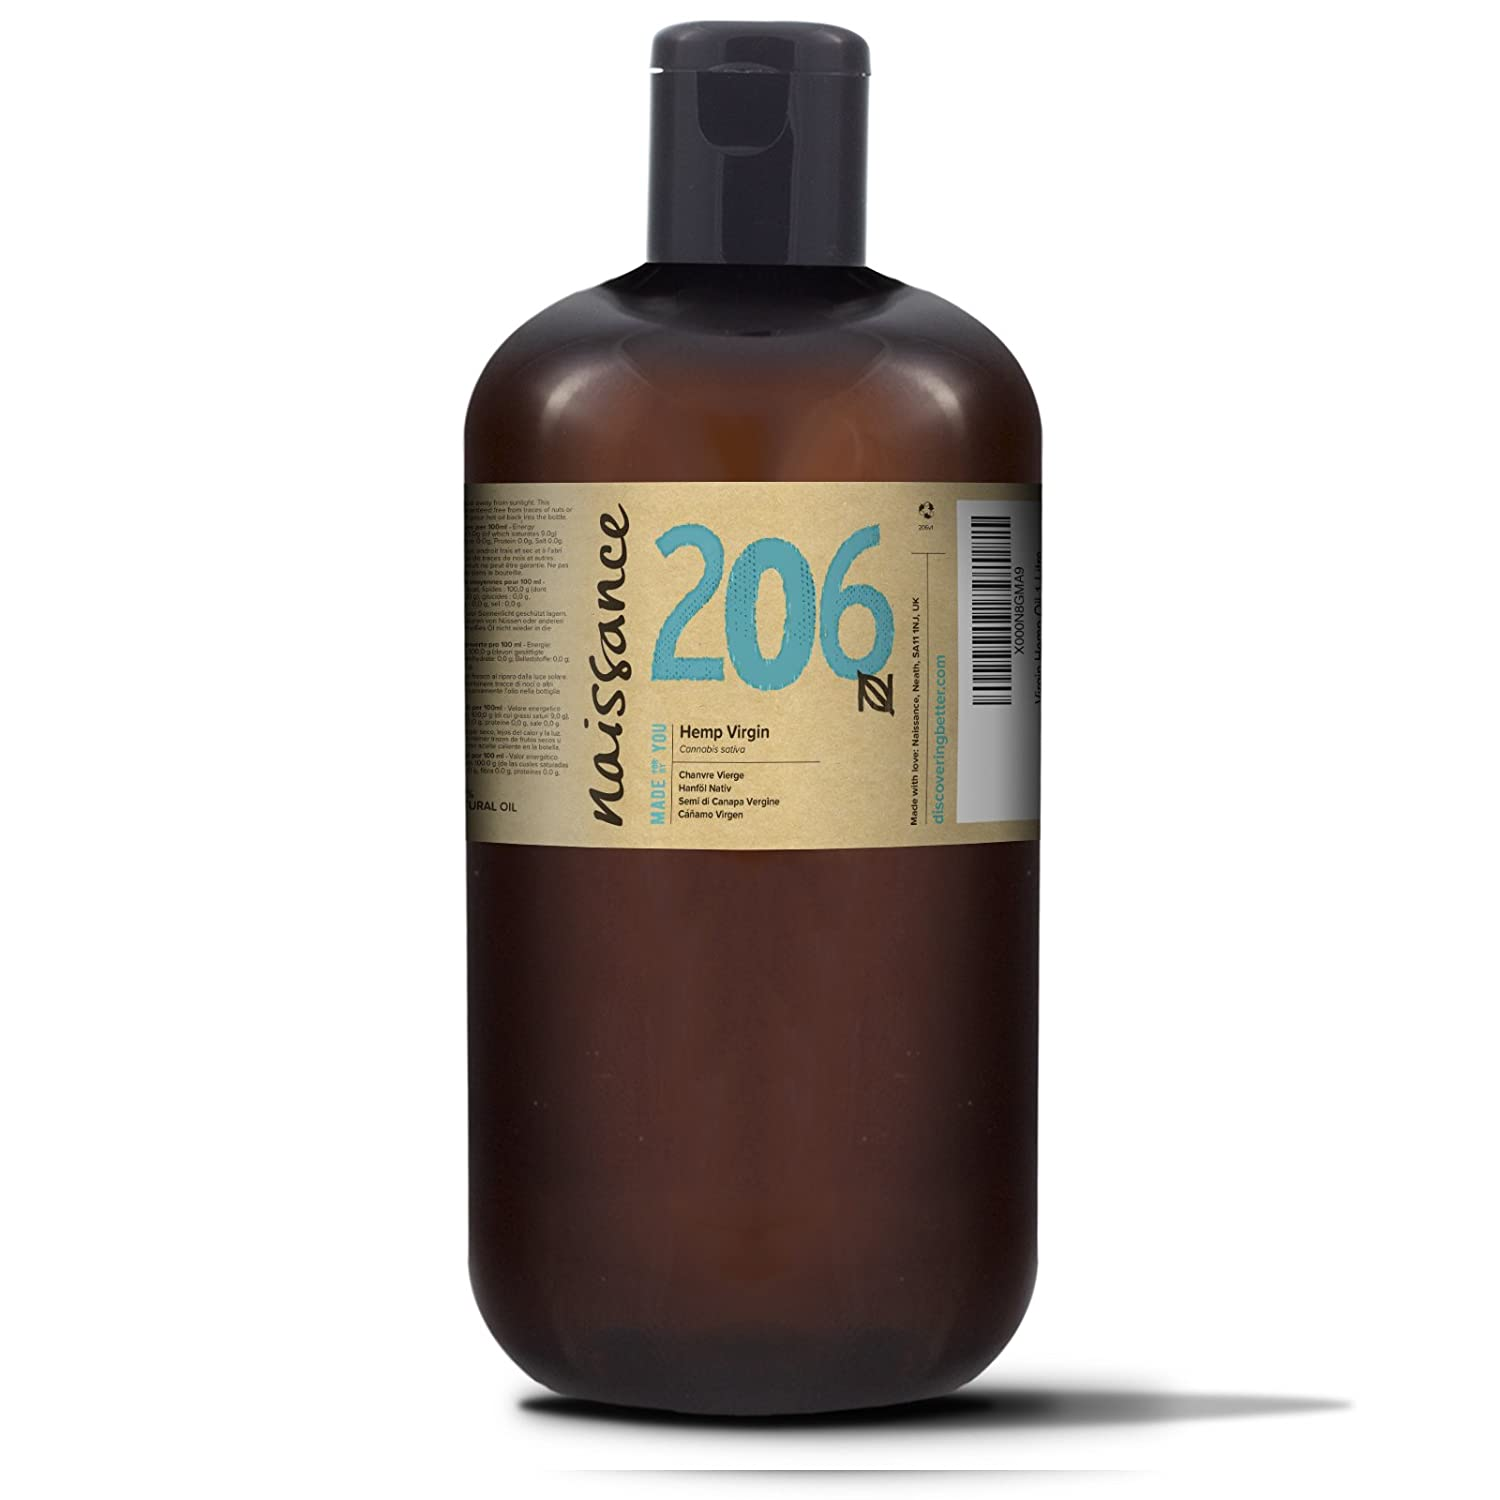 naissance cold pressed virgin hemp seed oil no 206 1 litre pure